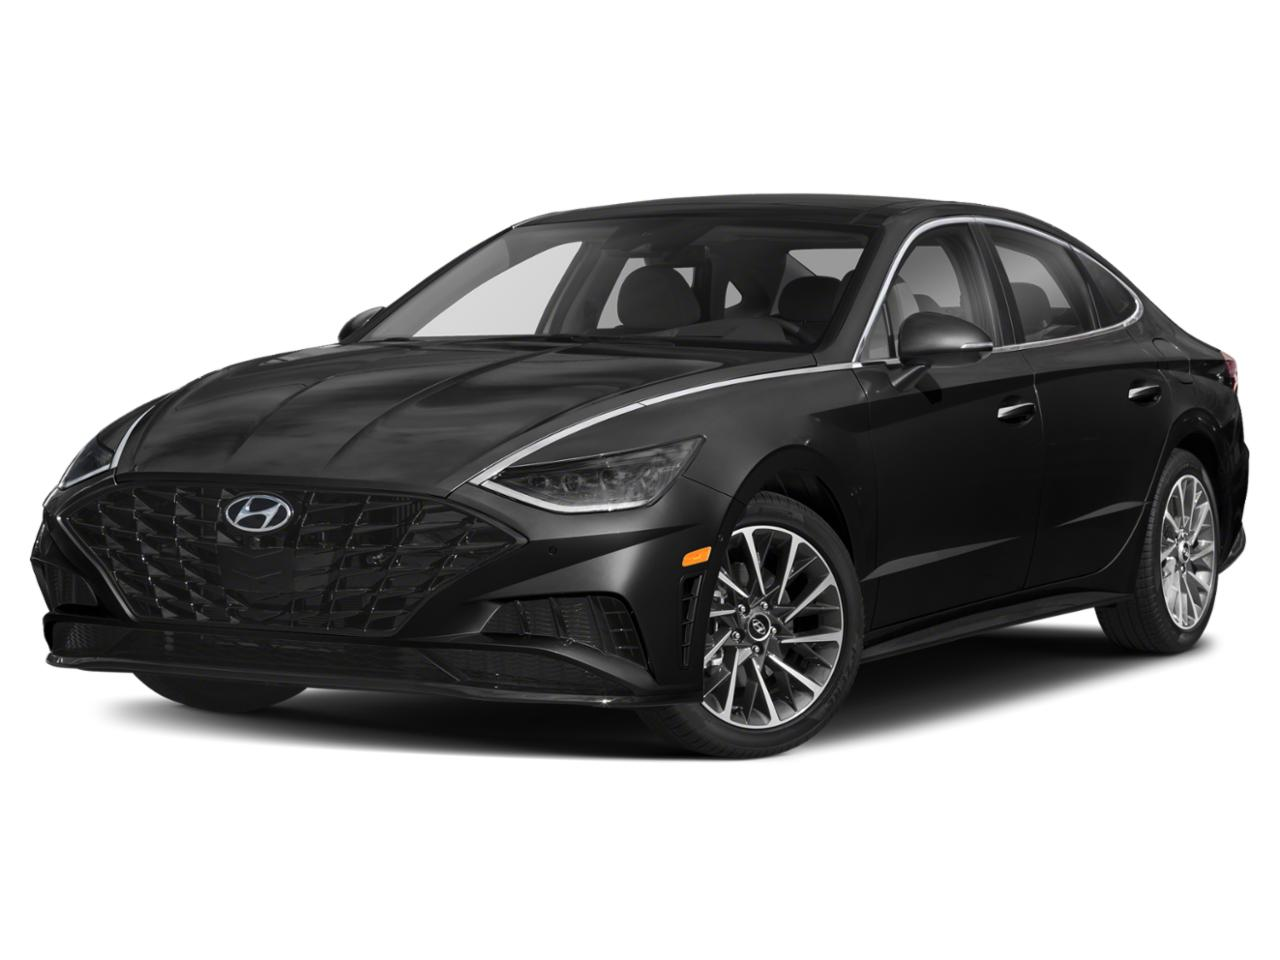 2021 Hyundai Sonata Vehicle Photo in Quakertown, PA 18951